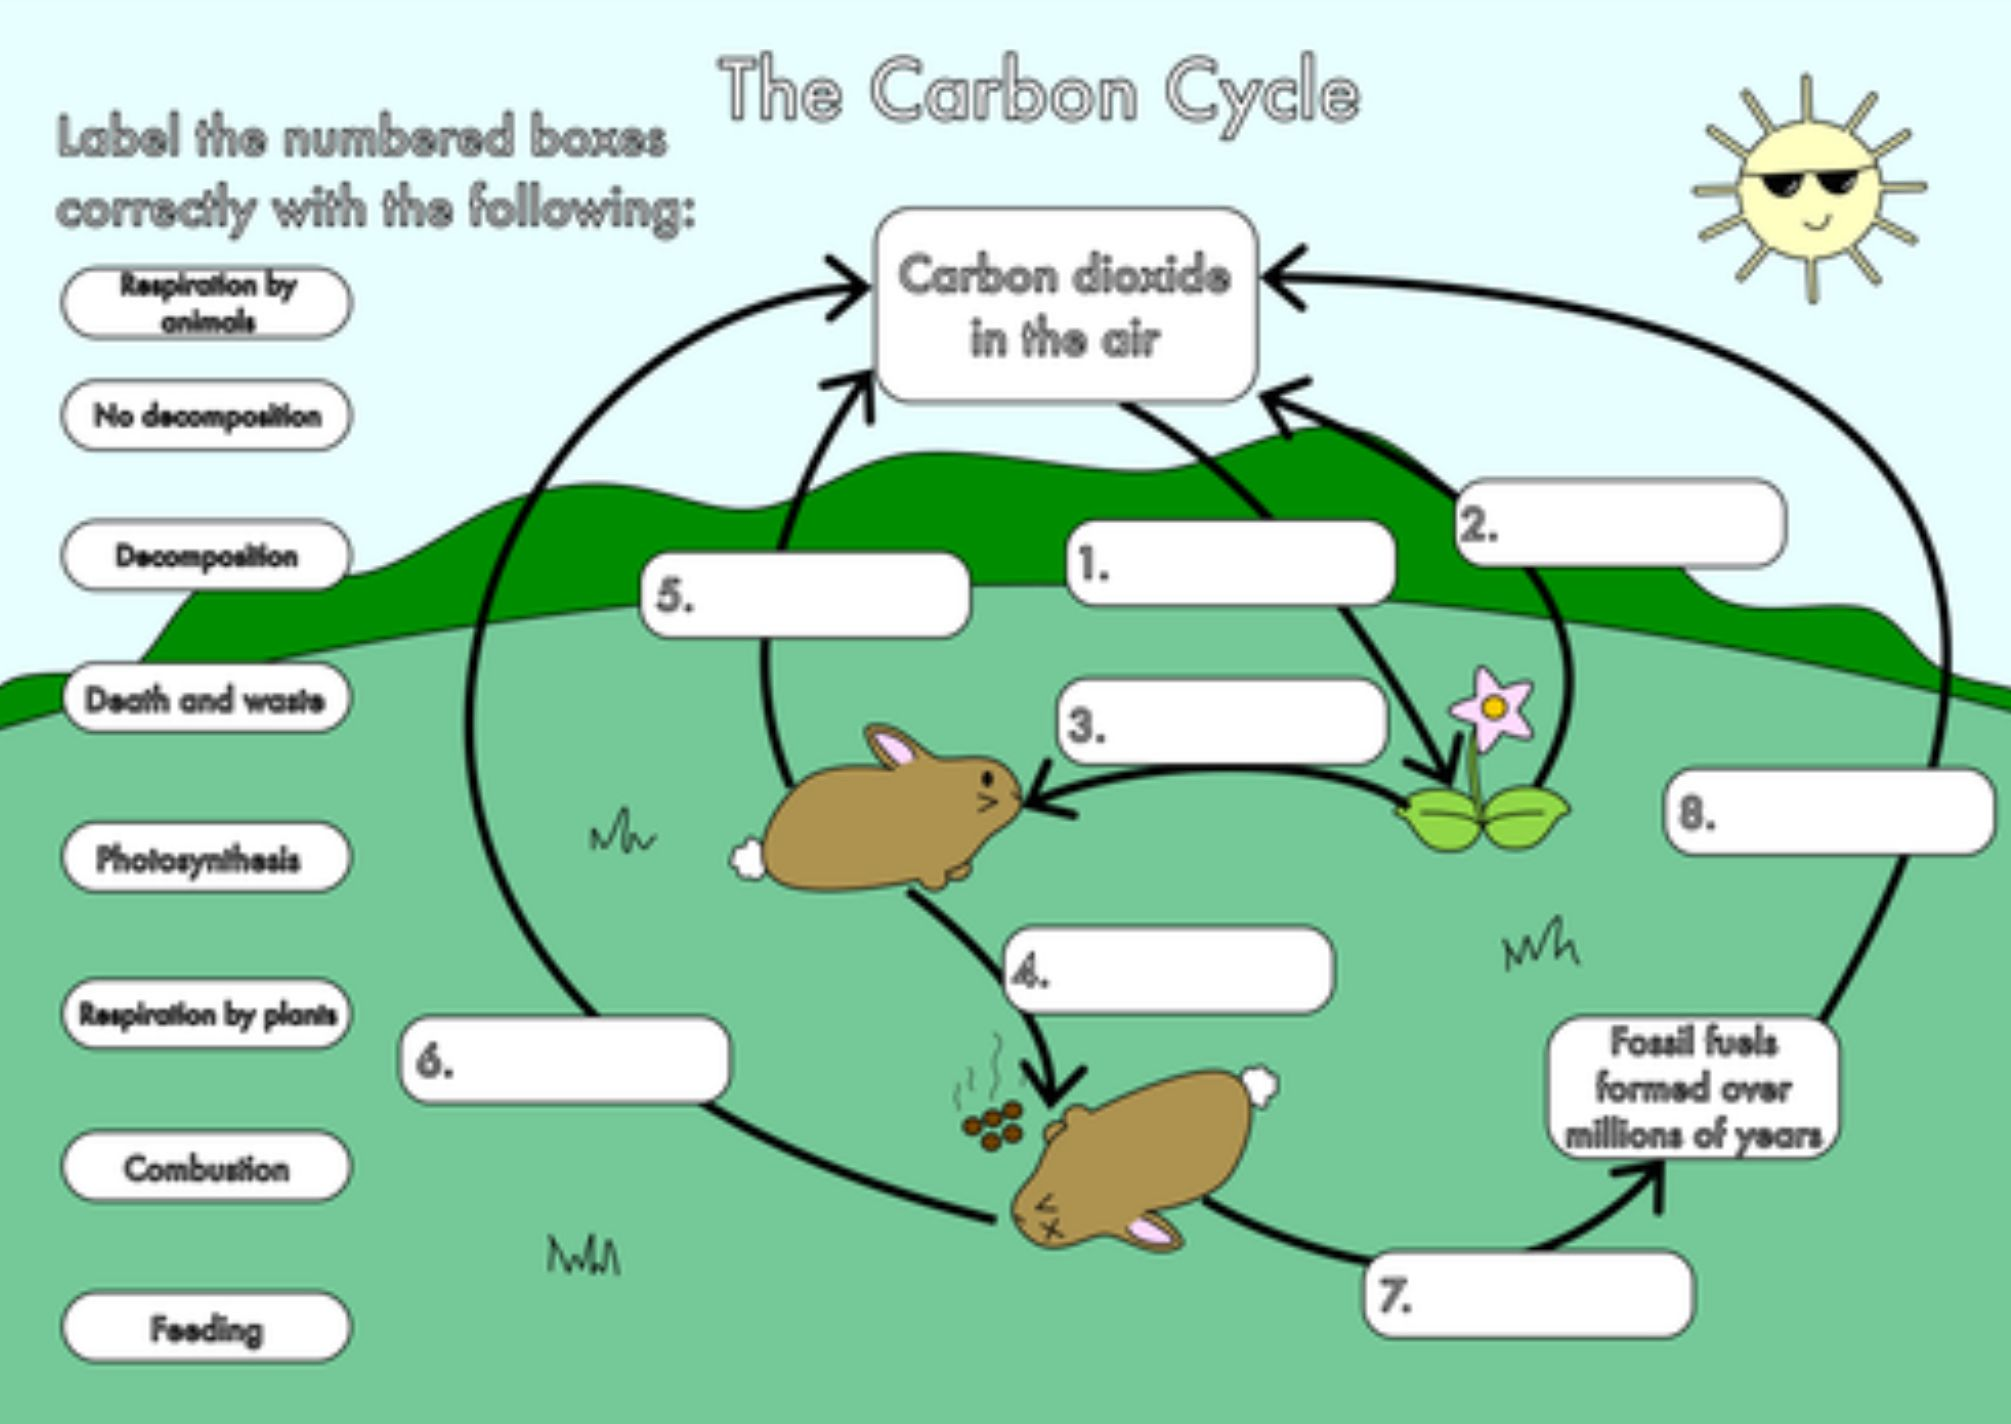 the carbon cycle - worksheet 1 - tuesday, may 29, 2018 | snc1d